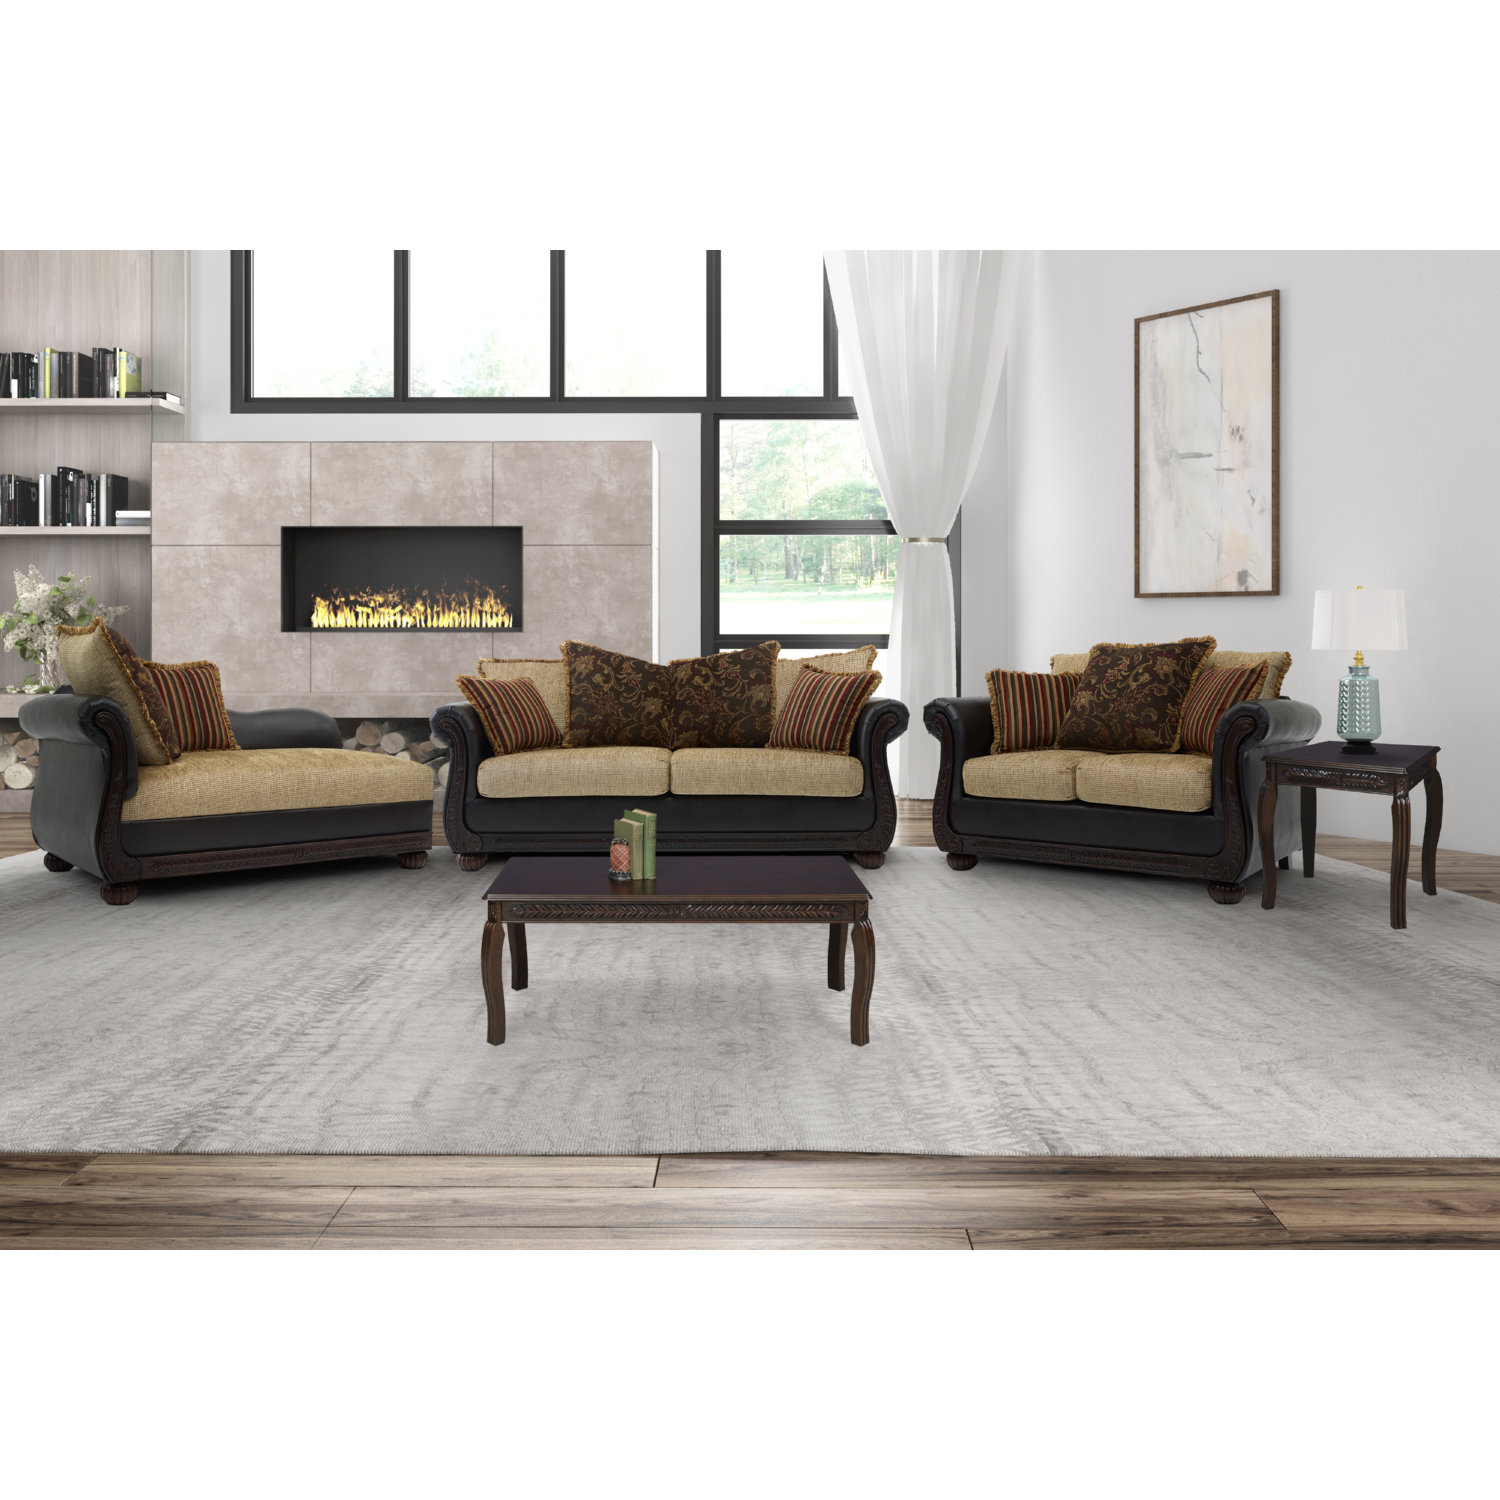 Miraculous 8525 Ruched Arm Sofa Loveseat Chaise Set In Brown Fabric Leatherette By Chintaly Imports Cjindustries Chair Design For Home Cjindustriesco